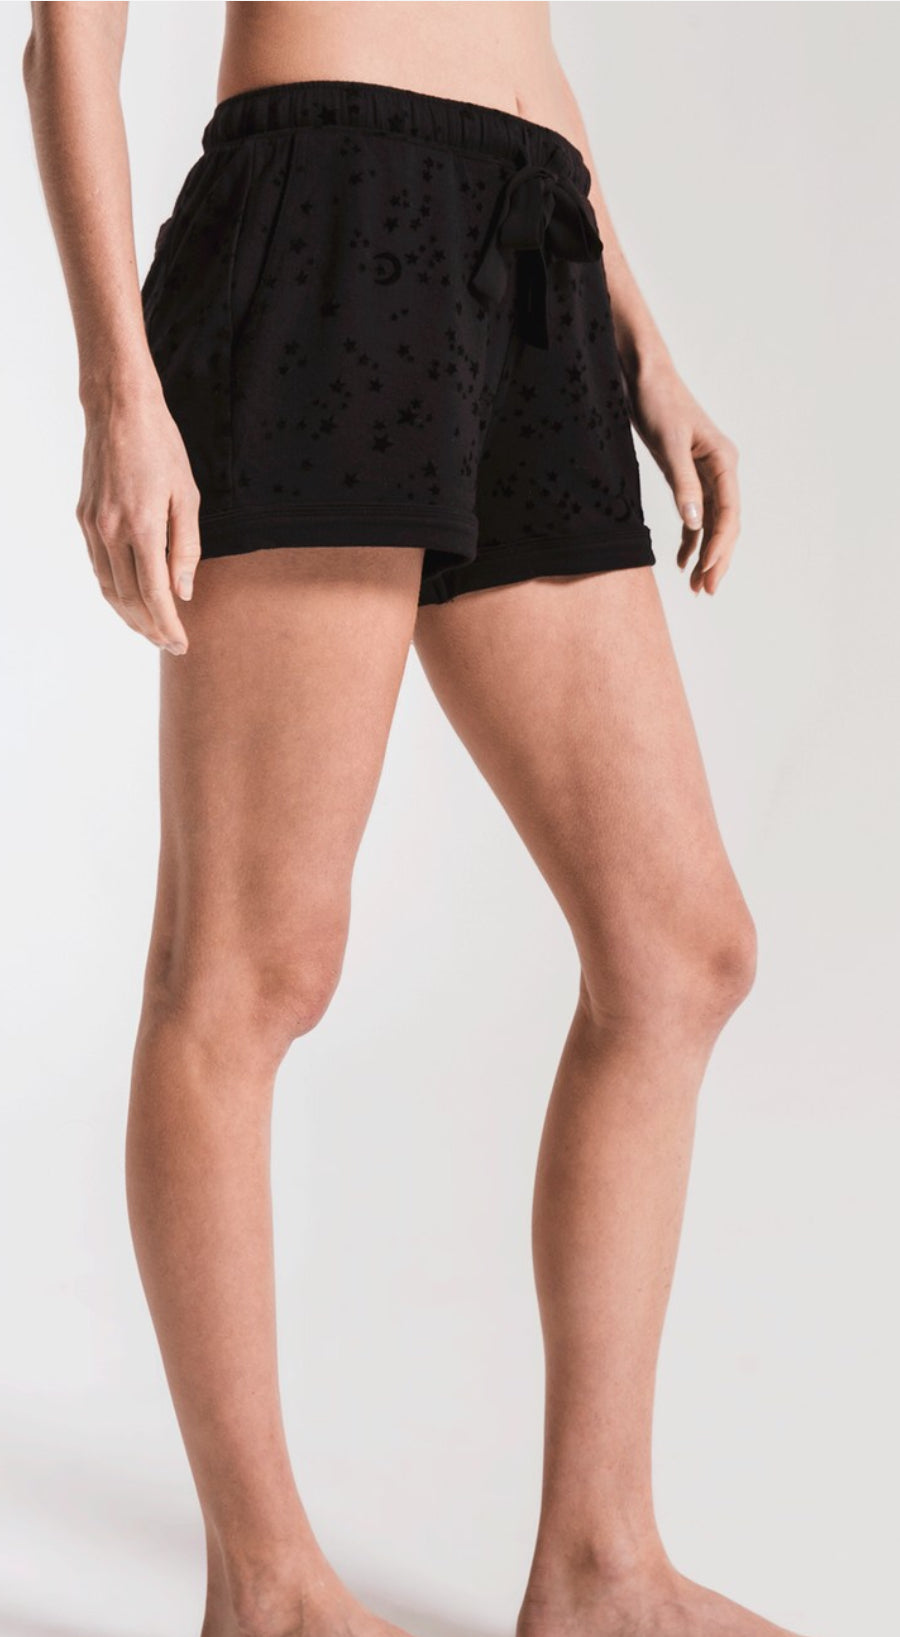 THE STARS PAJAMA SHORTS